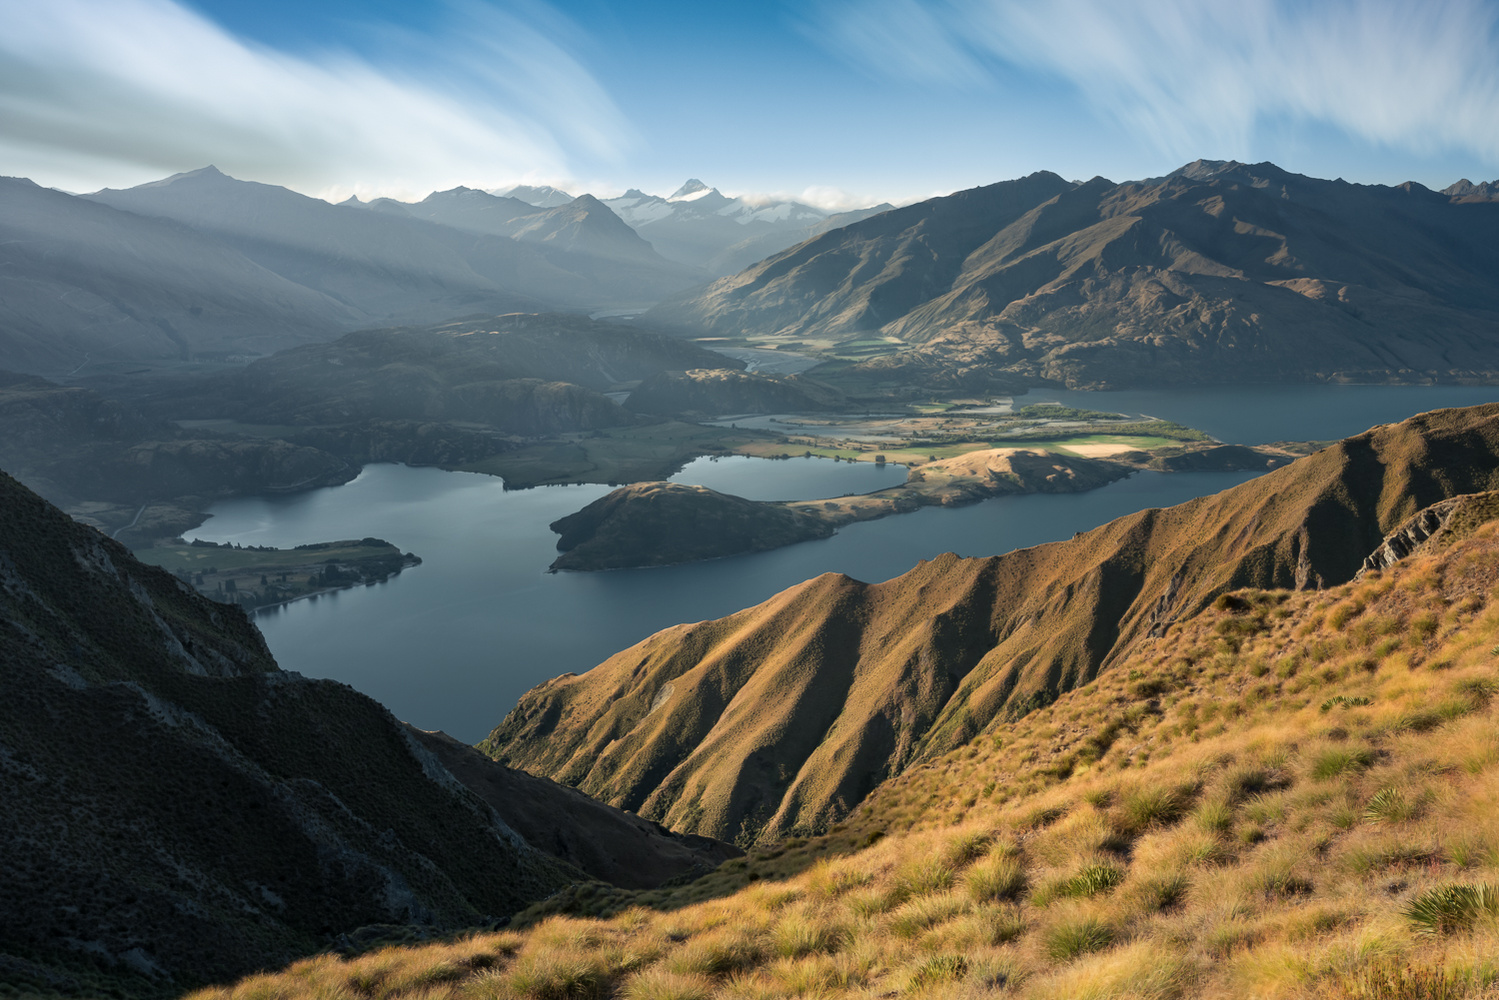 Another view from the Roys Peak by Masahiro Ikeda